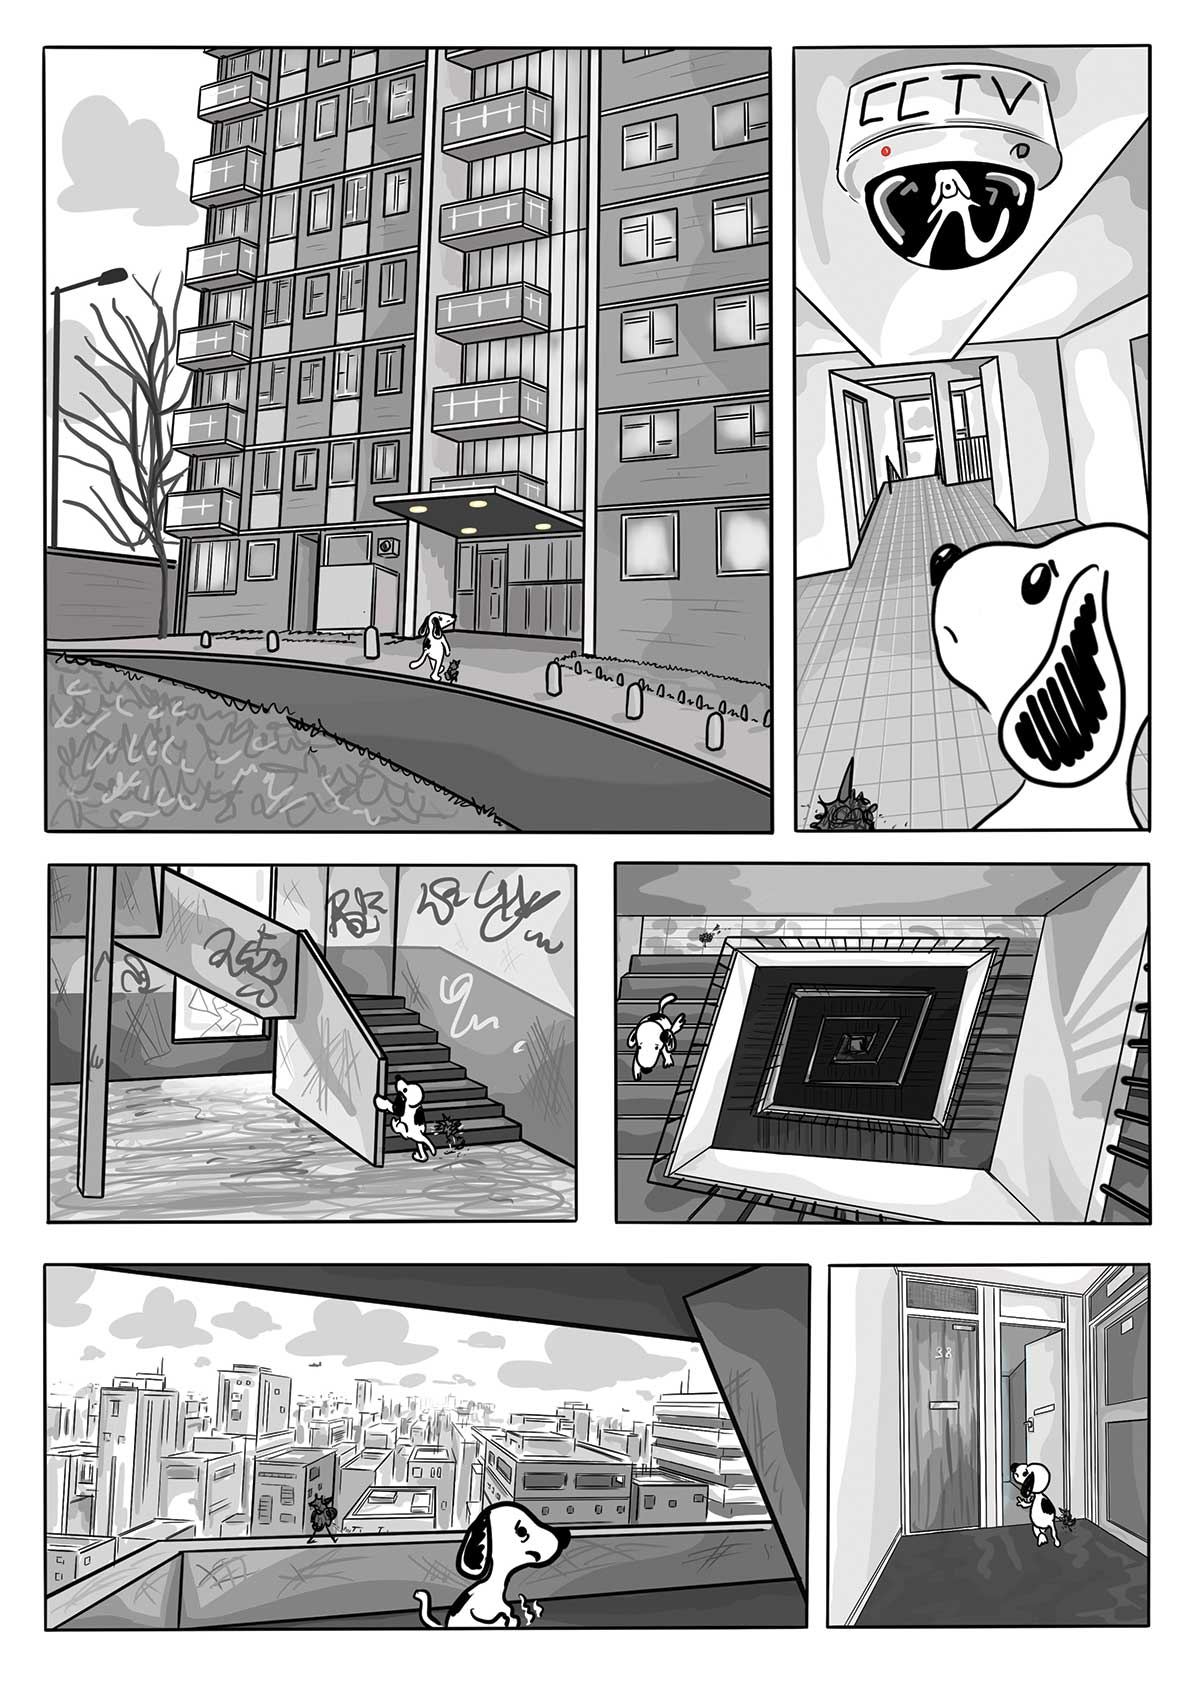 The Zoom! - Issue 13 - Page 14